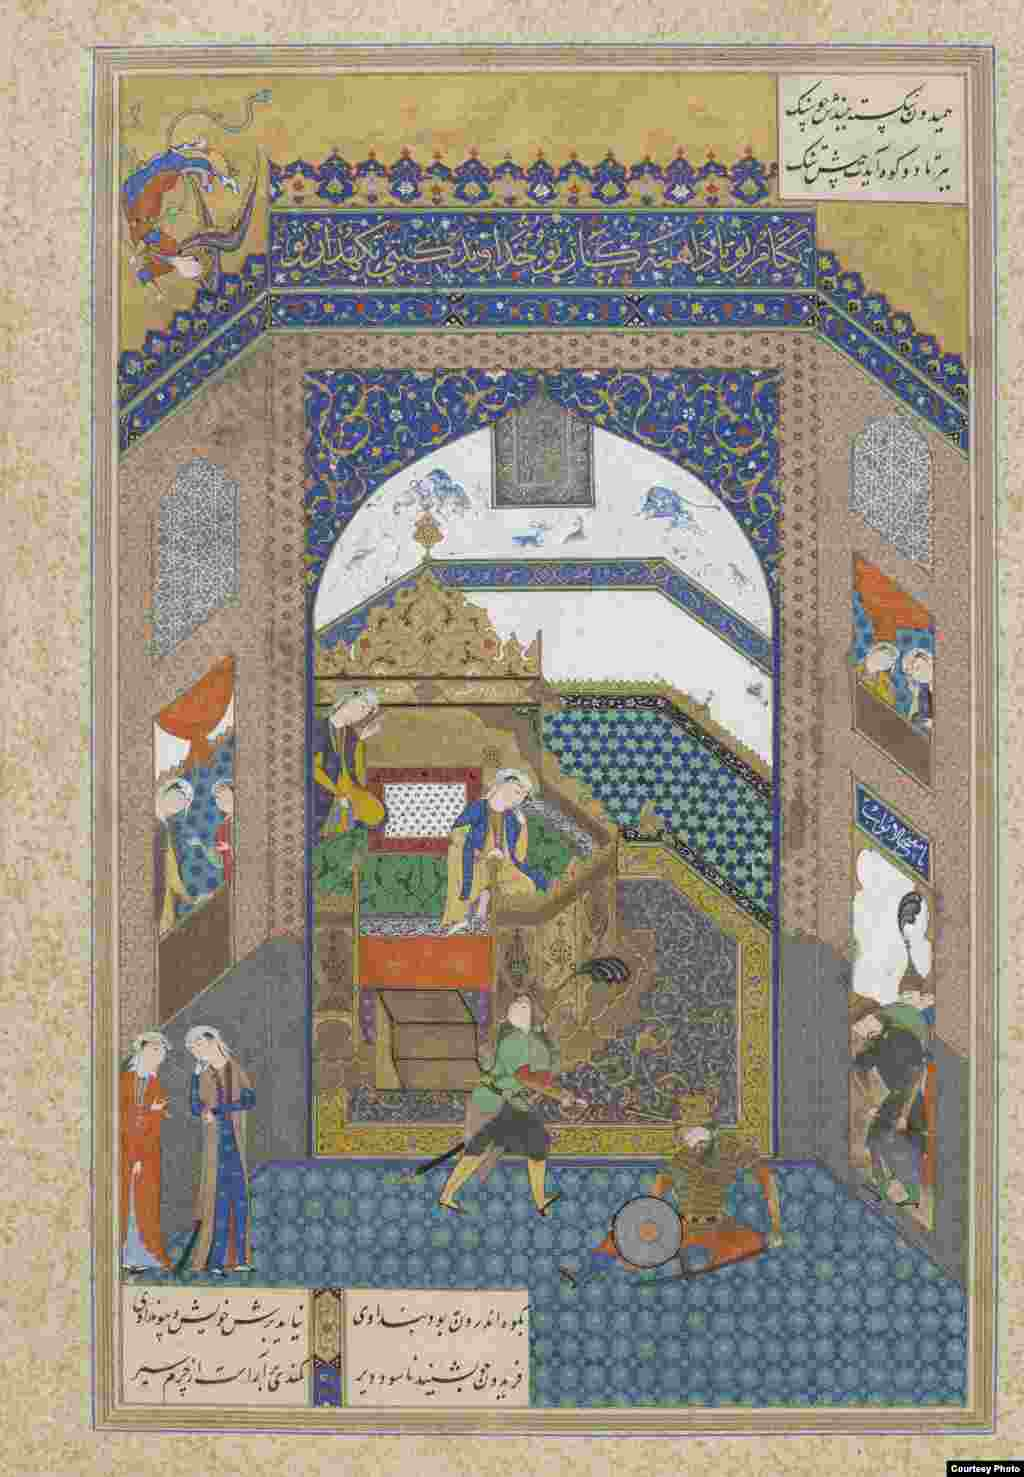 "On October 23, the Smithsonian Institute in Washington, D.C., will celebrate the millennial anniversary of the Persian epic poem ""The Shahnameh"" or ""Book of Kings"" with an exhibit of 19 rare watercolors, along with two copies of the book and various metal artifacts depicting characters. ""Feridun Strikes Zahak With The Ox-Headed Mace,"" Tabriz, Iran, circa 1525, from ""The Shahnameh"" (Book of Kings) by Firdawsi Photos courtesy of the Smithsonian Institute, Washington, D.C."